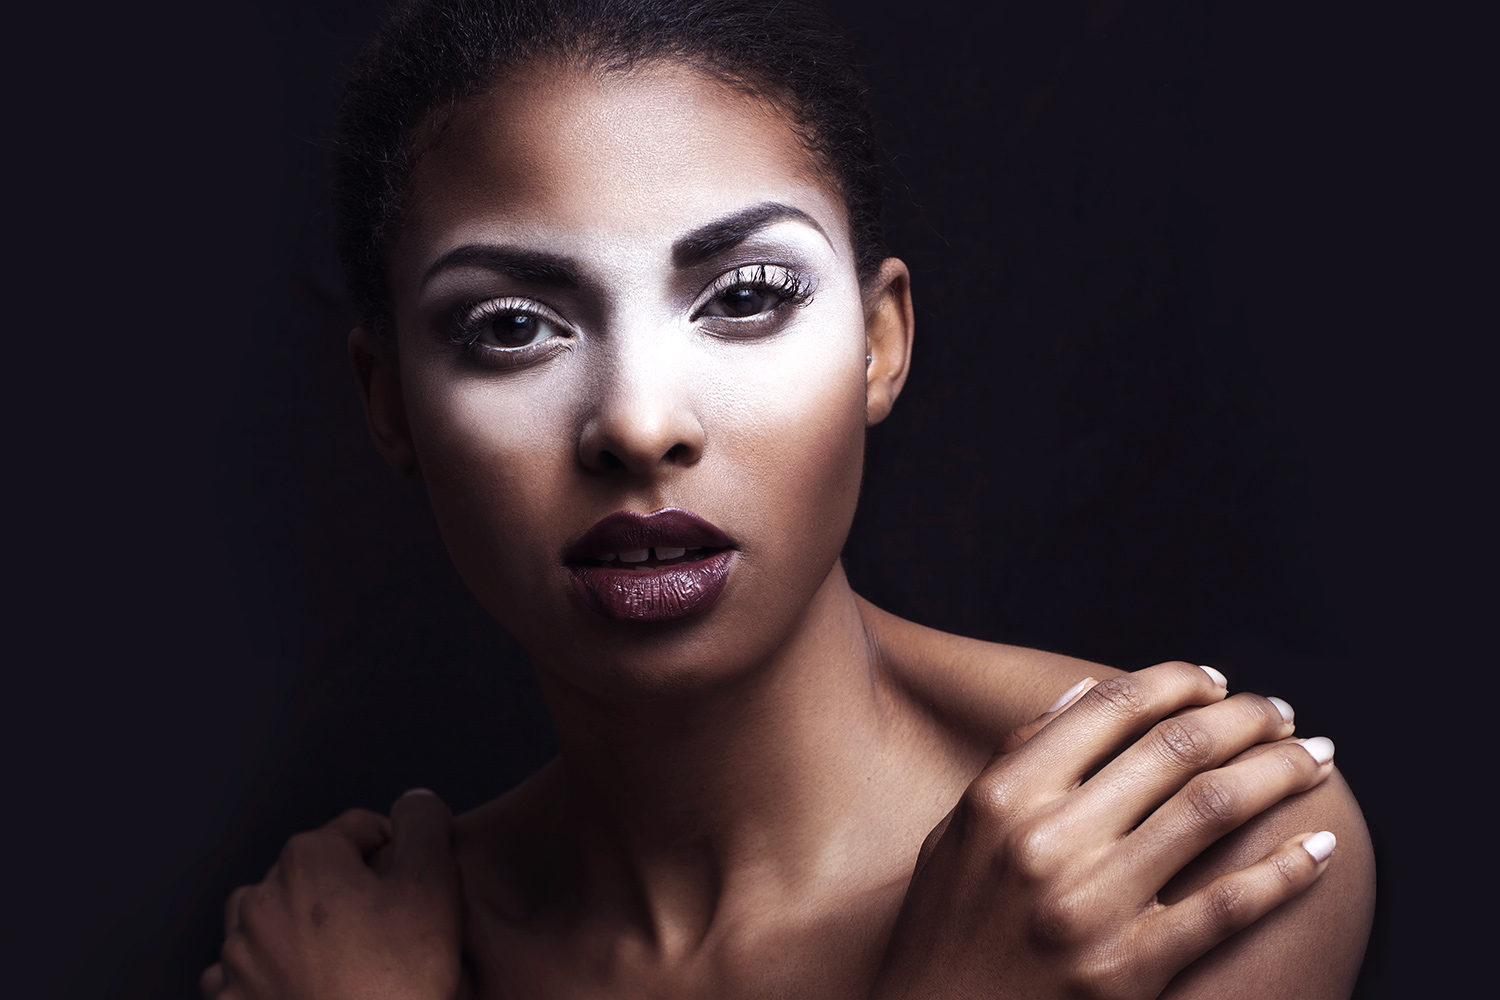 beautiful-black-woman-makeup-photography-by-sissela-New-York-city